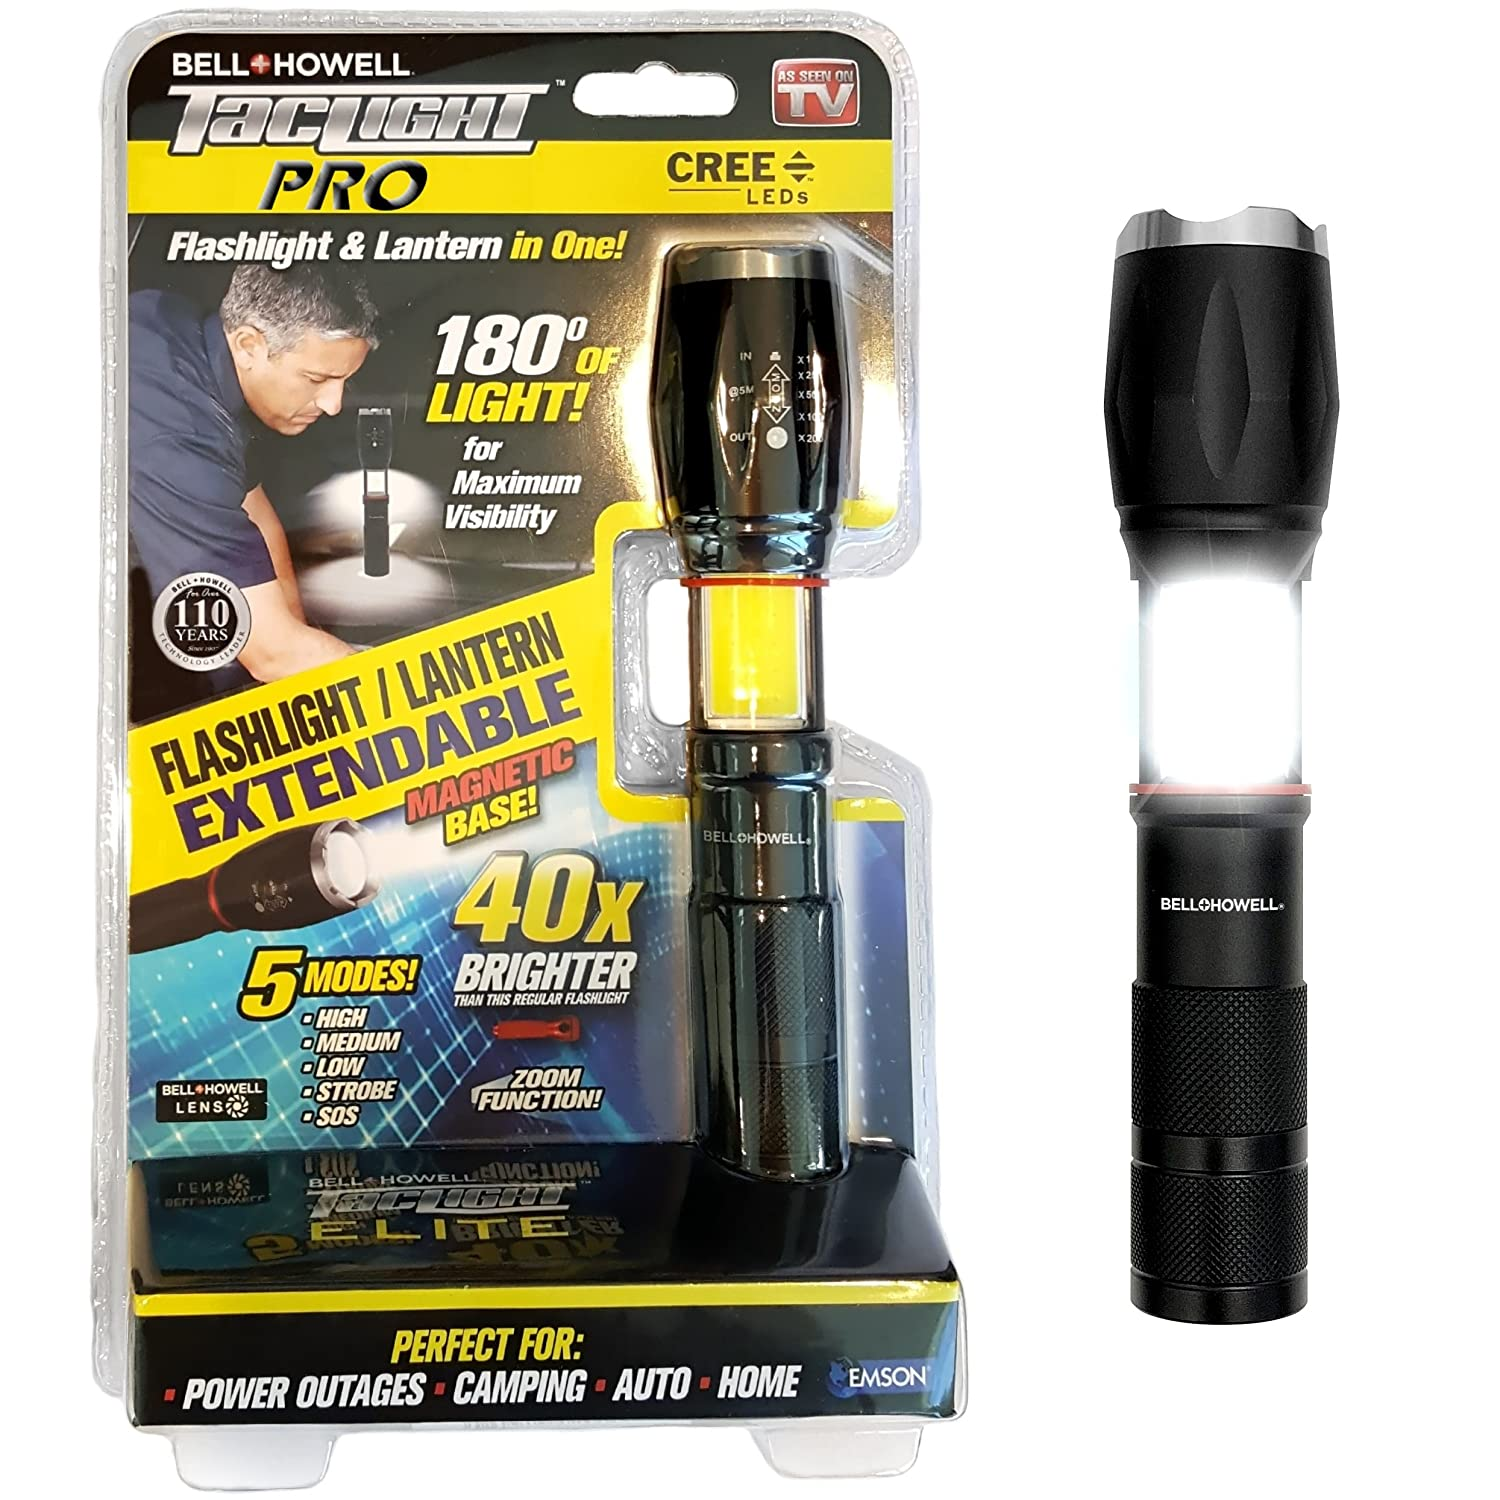 Bell + Howell TACLIGHT PRO Lantern+Flashlight in-1 with Zoom, Magnetic Base  As Seen On TV - 40x Brighter (2010)